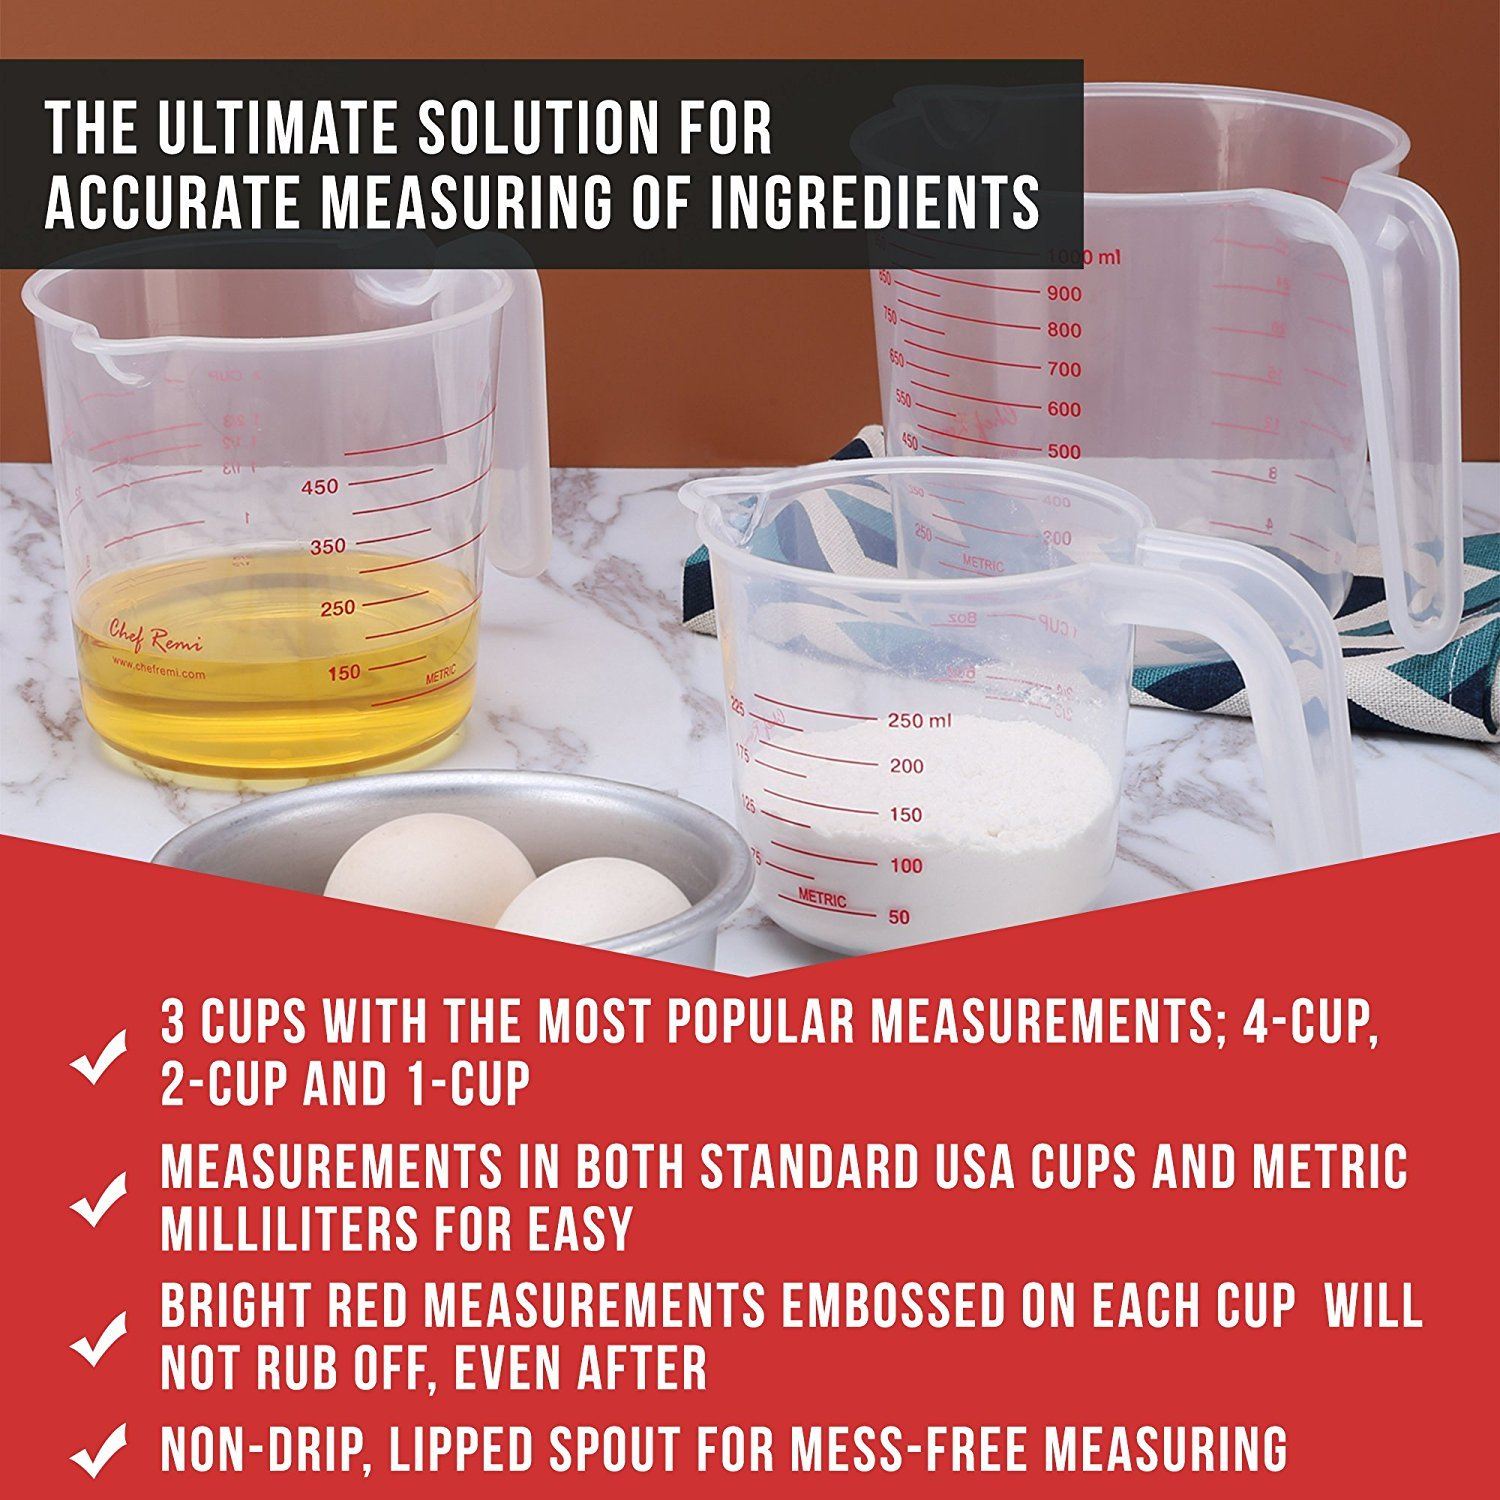 Latest 3pc Measuring Cups Set - Multi Function 4-Cup, 2-Cup and 1-Cup Capacity BPA-Free Measuring Cups With Angled Grip - Essential Bakeware/Prepware Accessories by Chef Remi (Image #3)